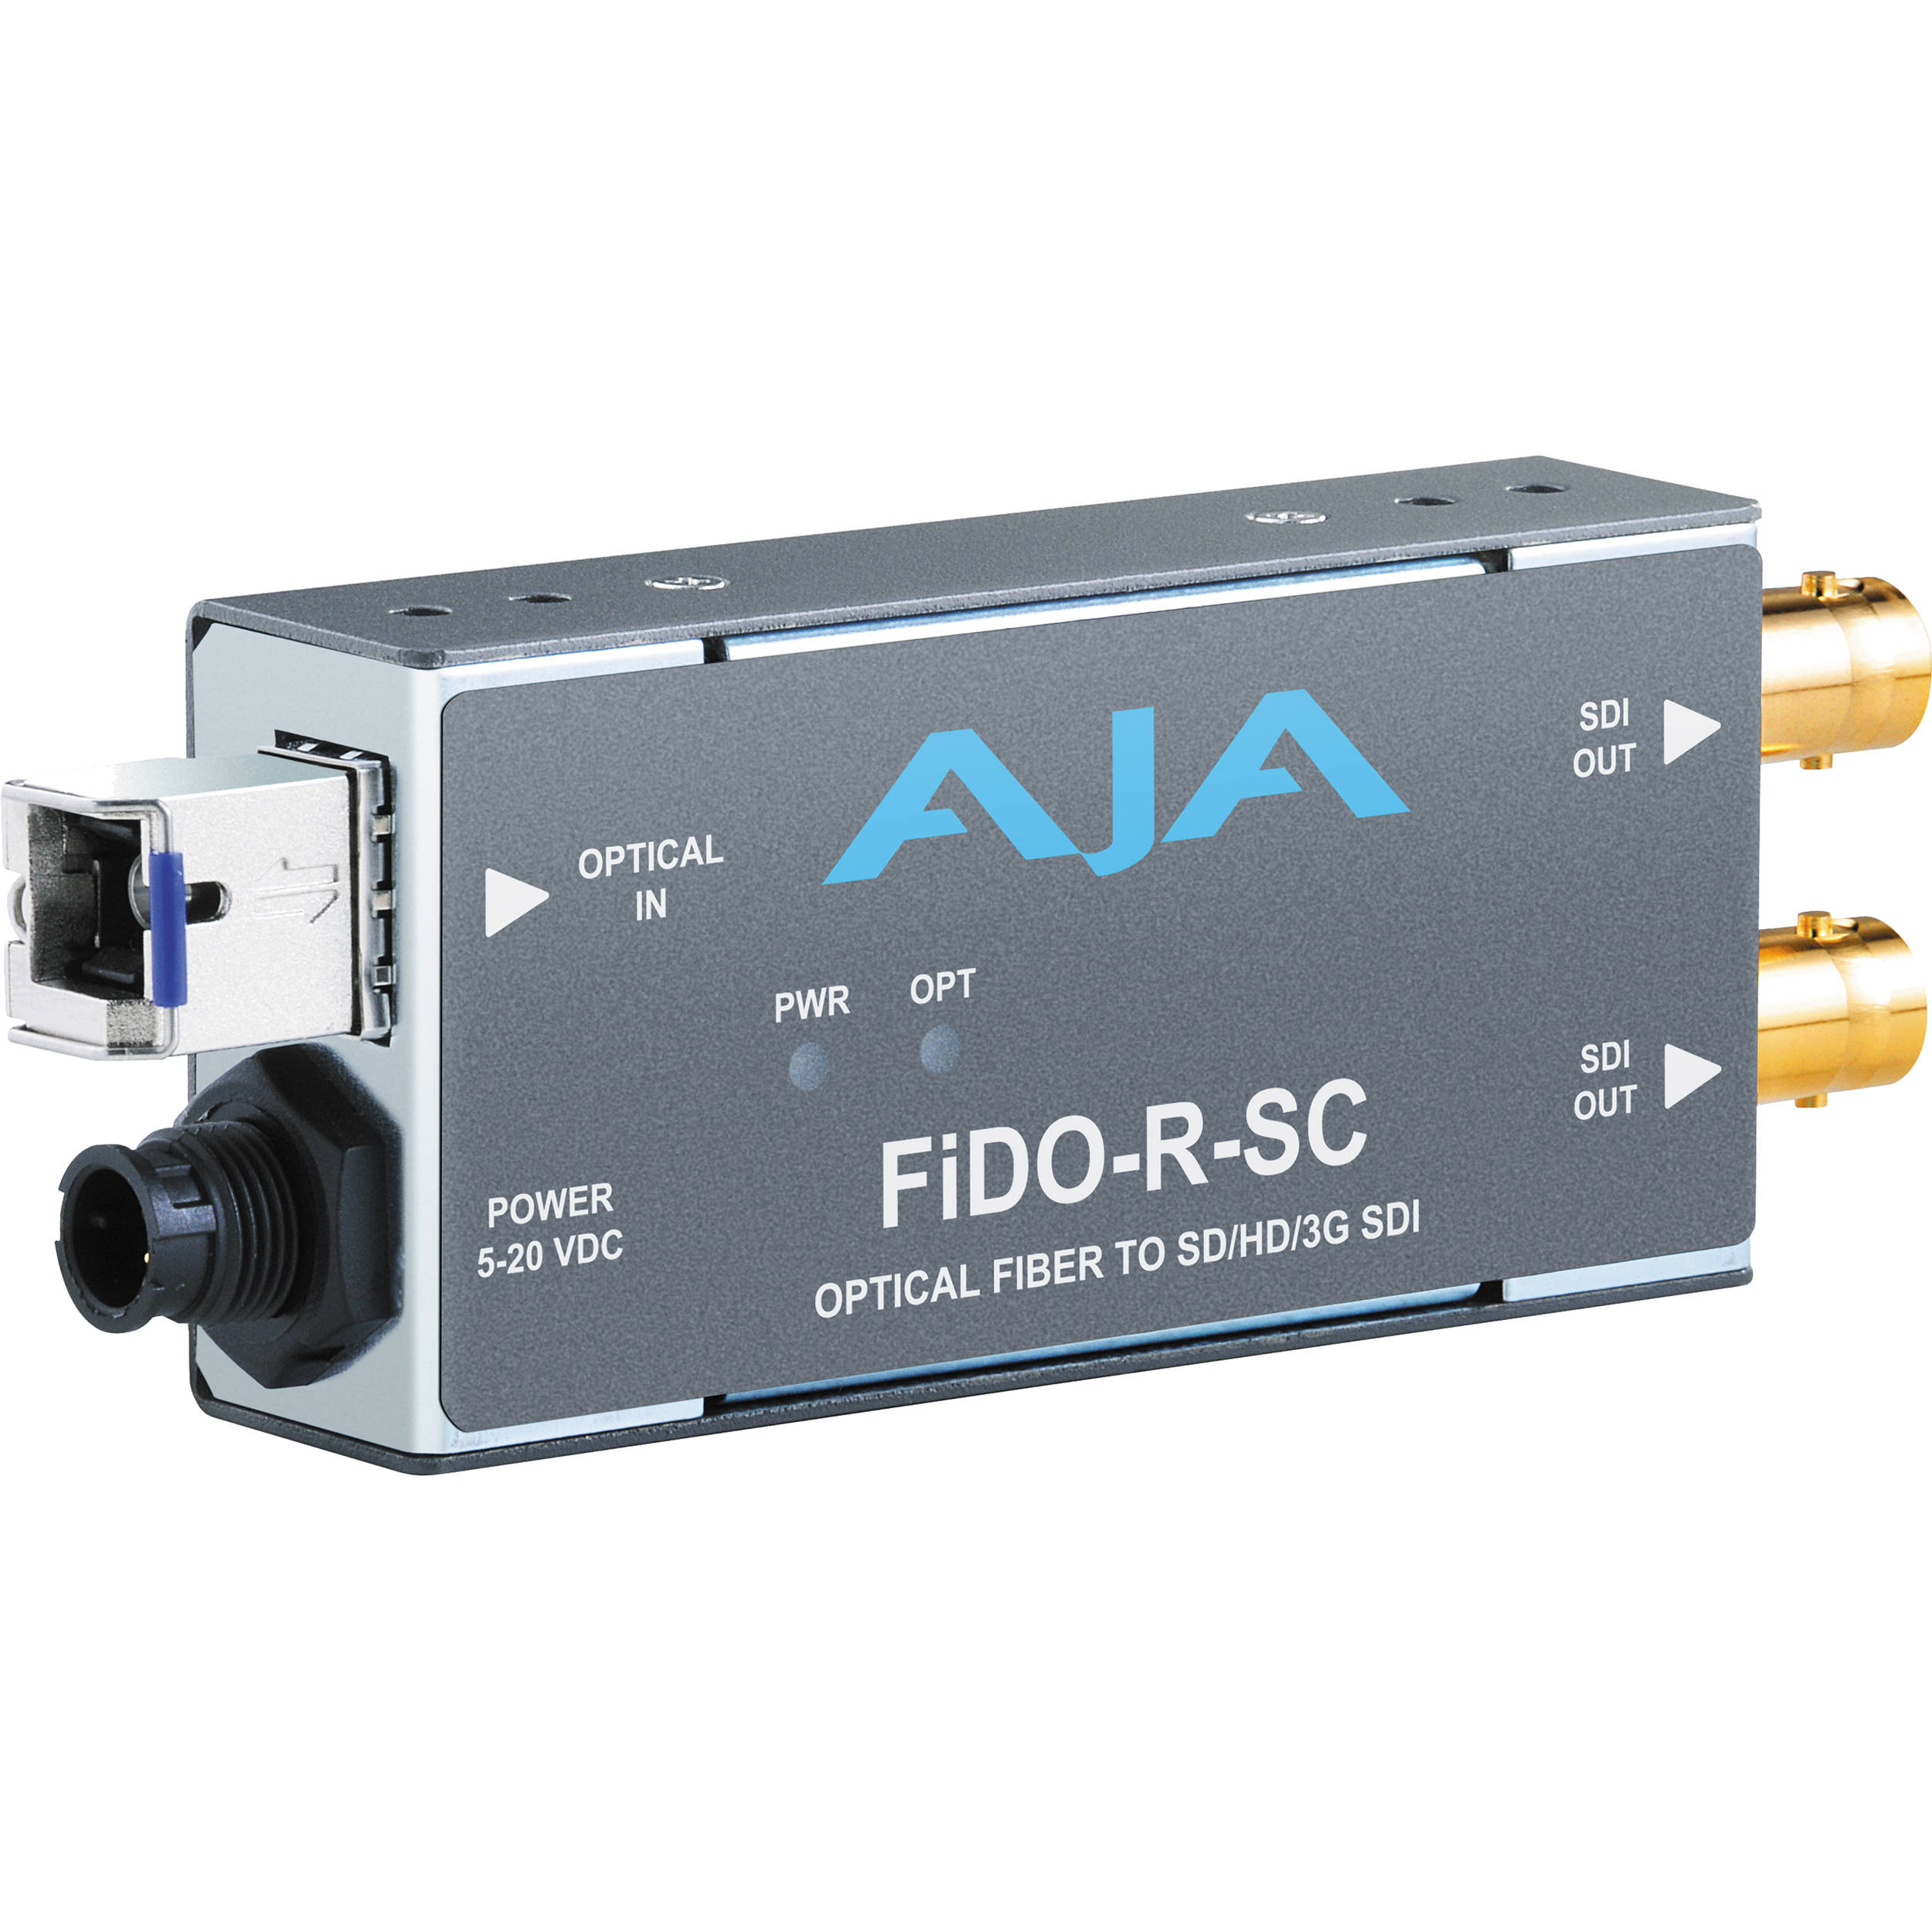 AJA FiDO-R-SC SDI/Optical Fiber Mini-Converter